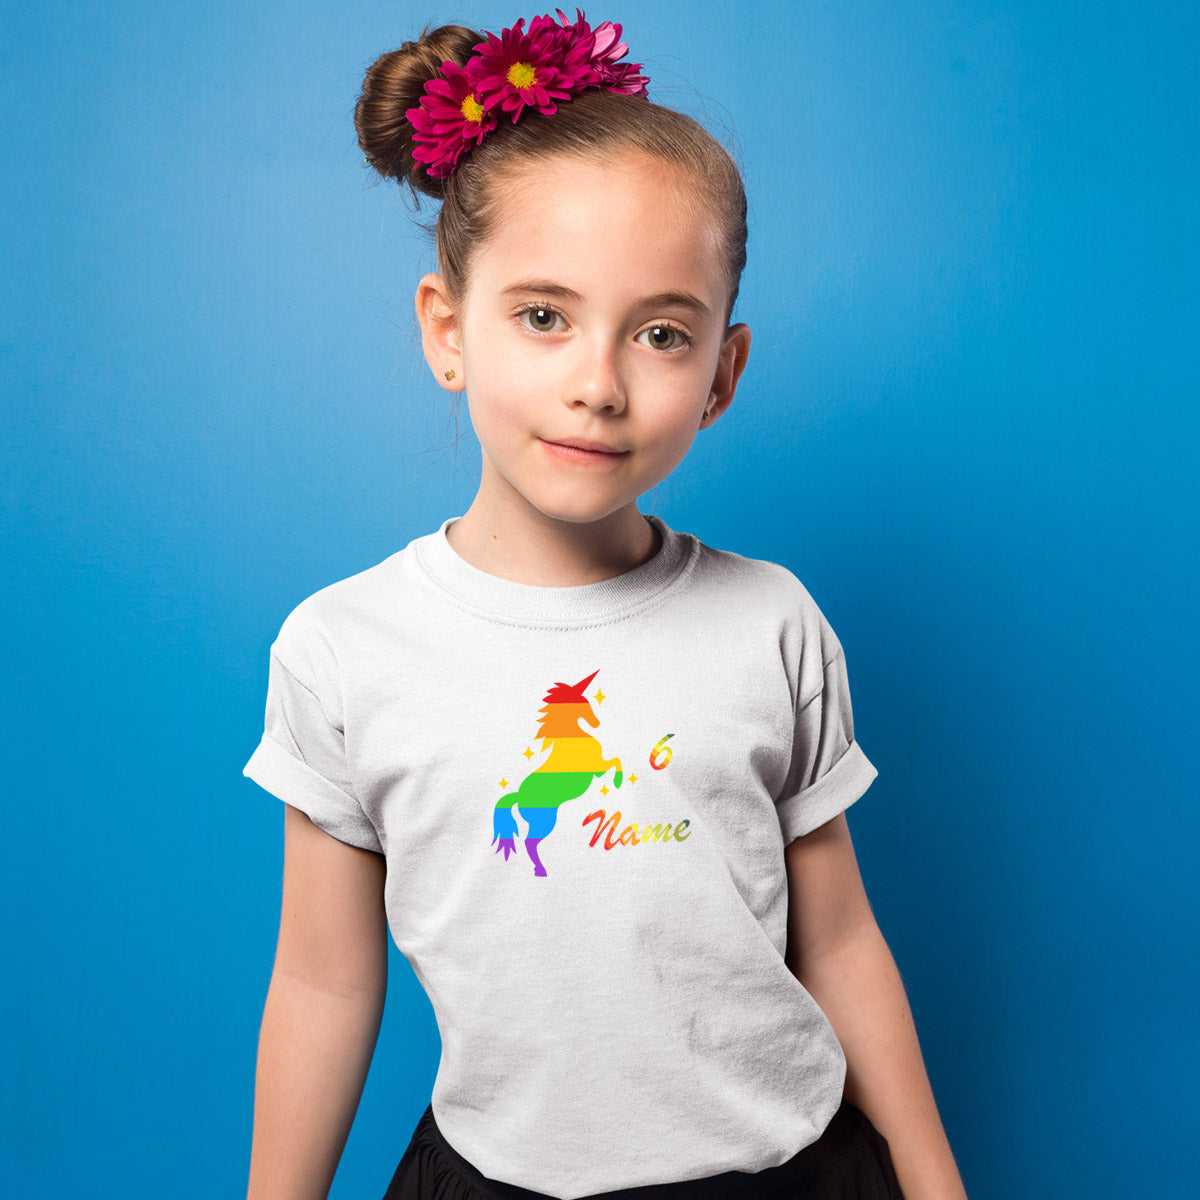 Sprinklecart Custom Name and Age Printed Unicorn 6th Birthday Poly-Cotton T Shirt for Kids (White)